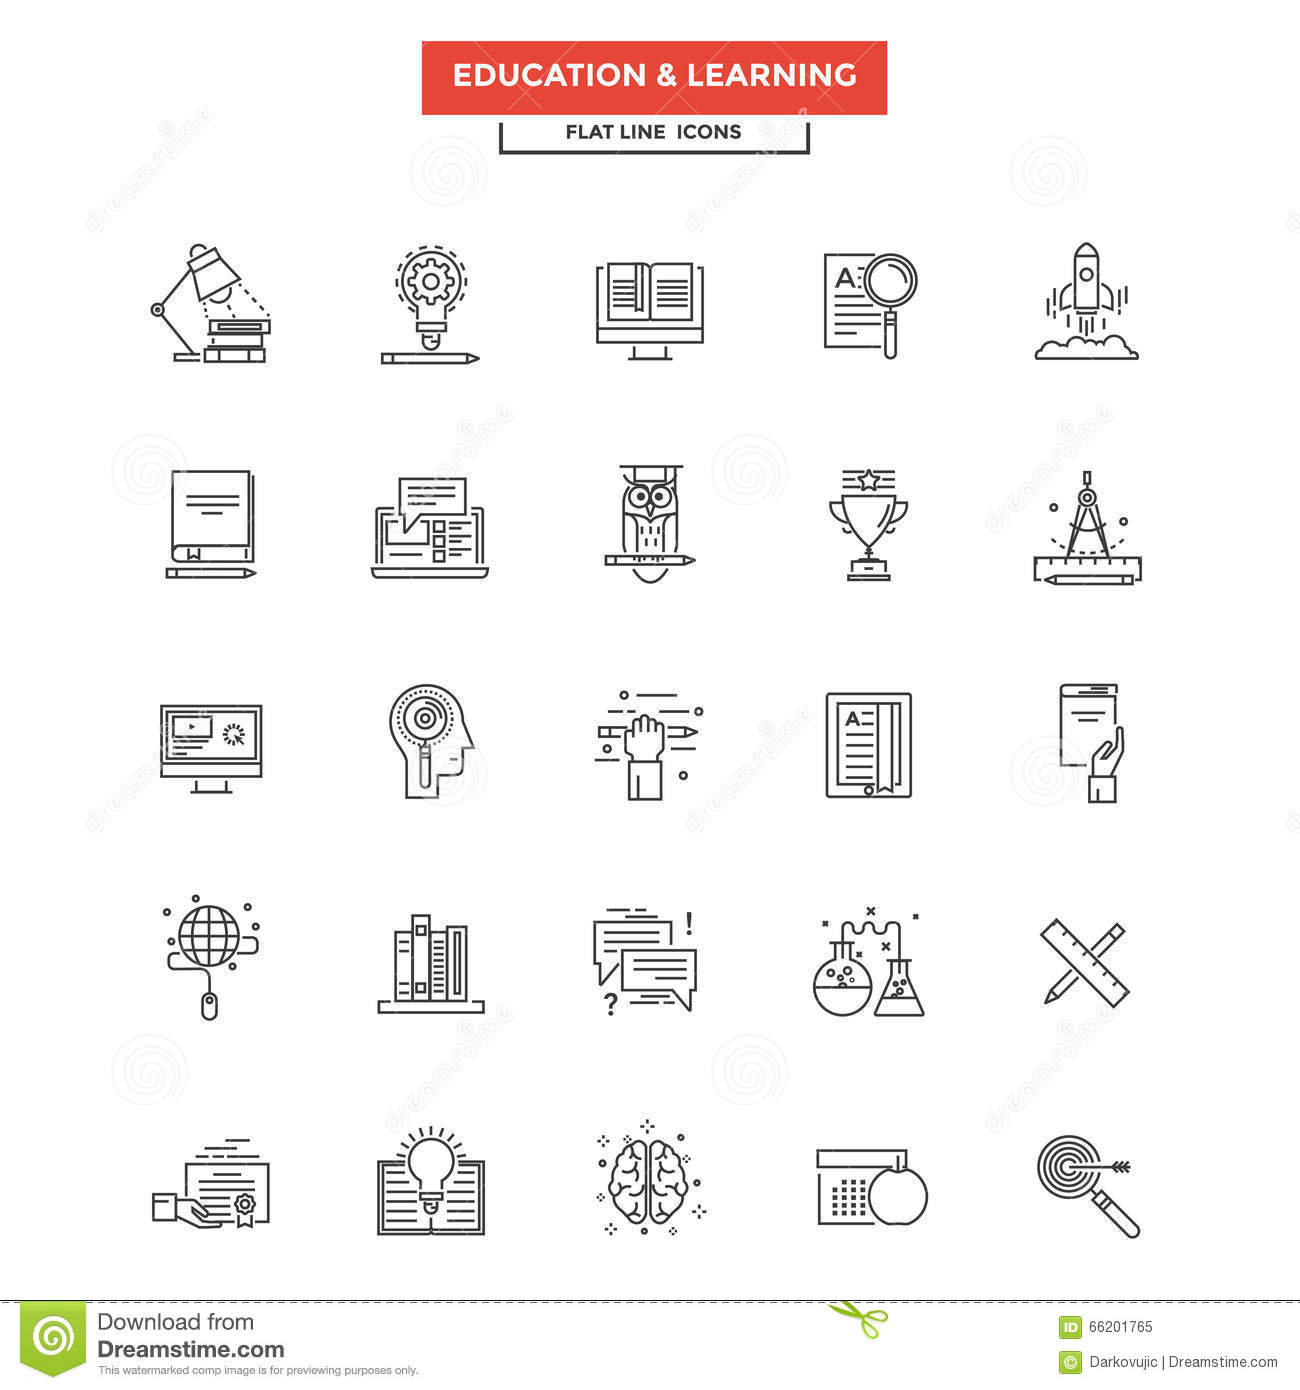 Flat Line Icons - Education And Learning Stock Vector